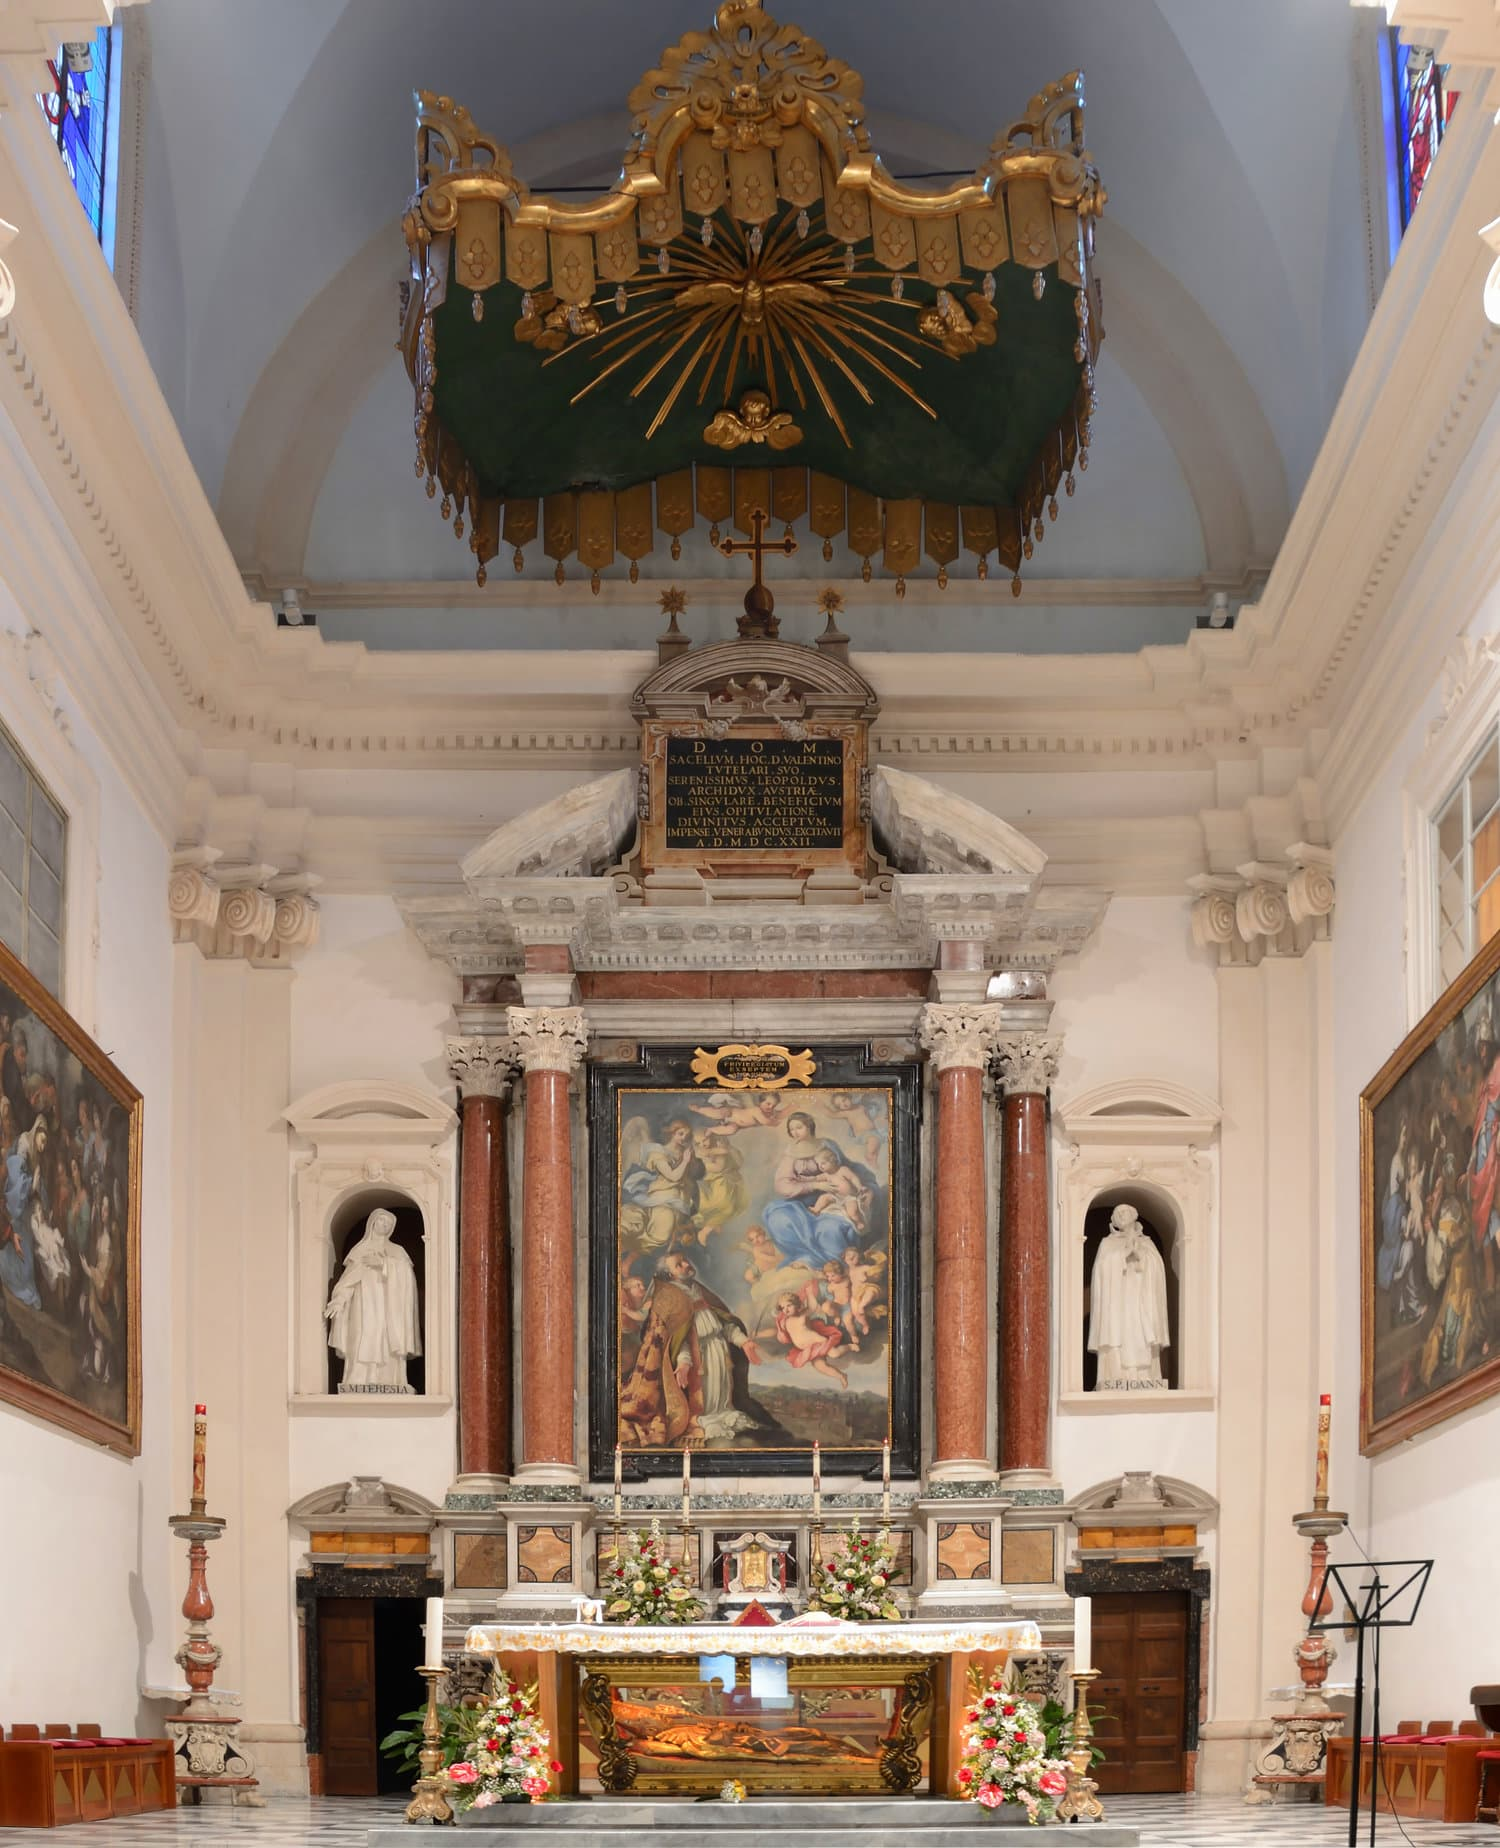 Altar of the Church of St. Valentine in Terni, Italy